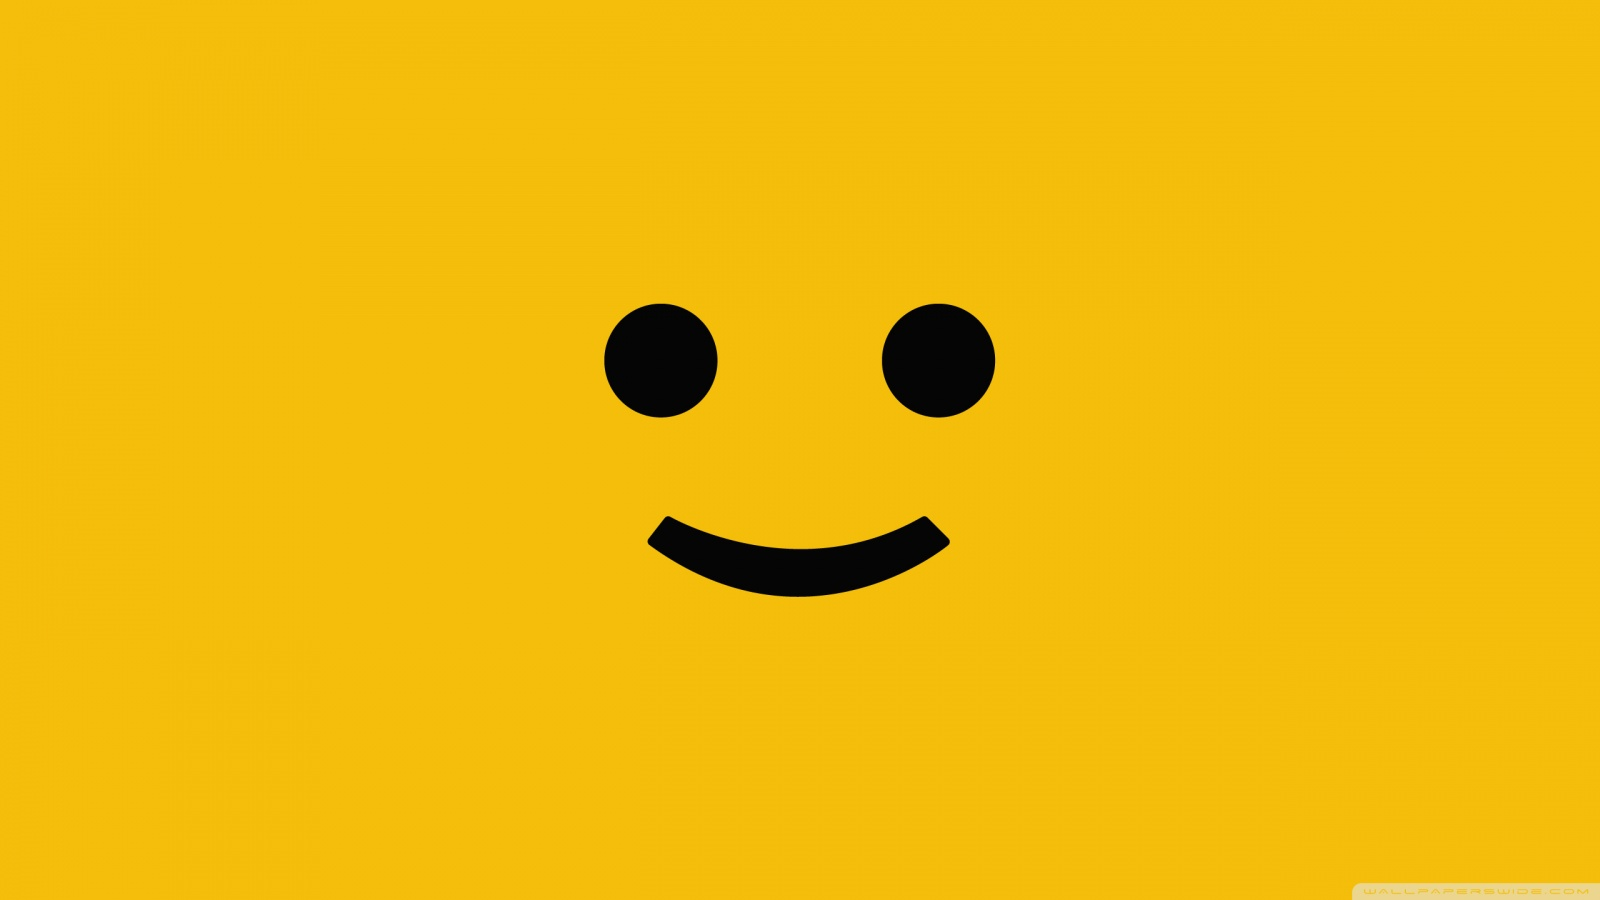 smiley_face_background-wallpaper-1600x900.jpg